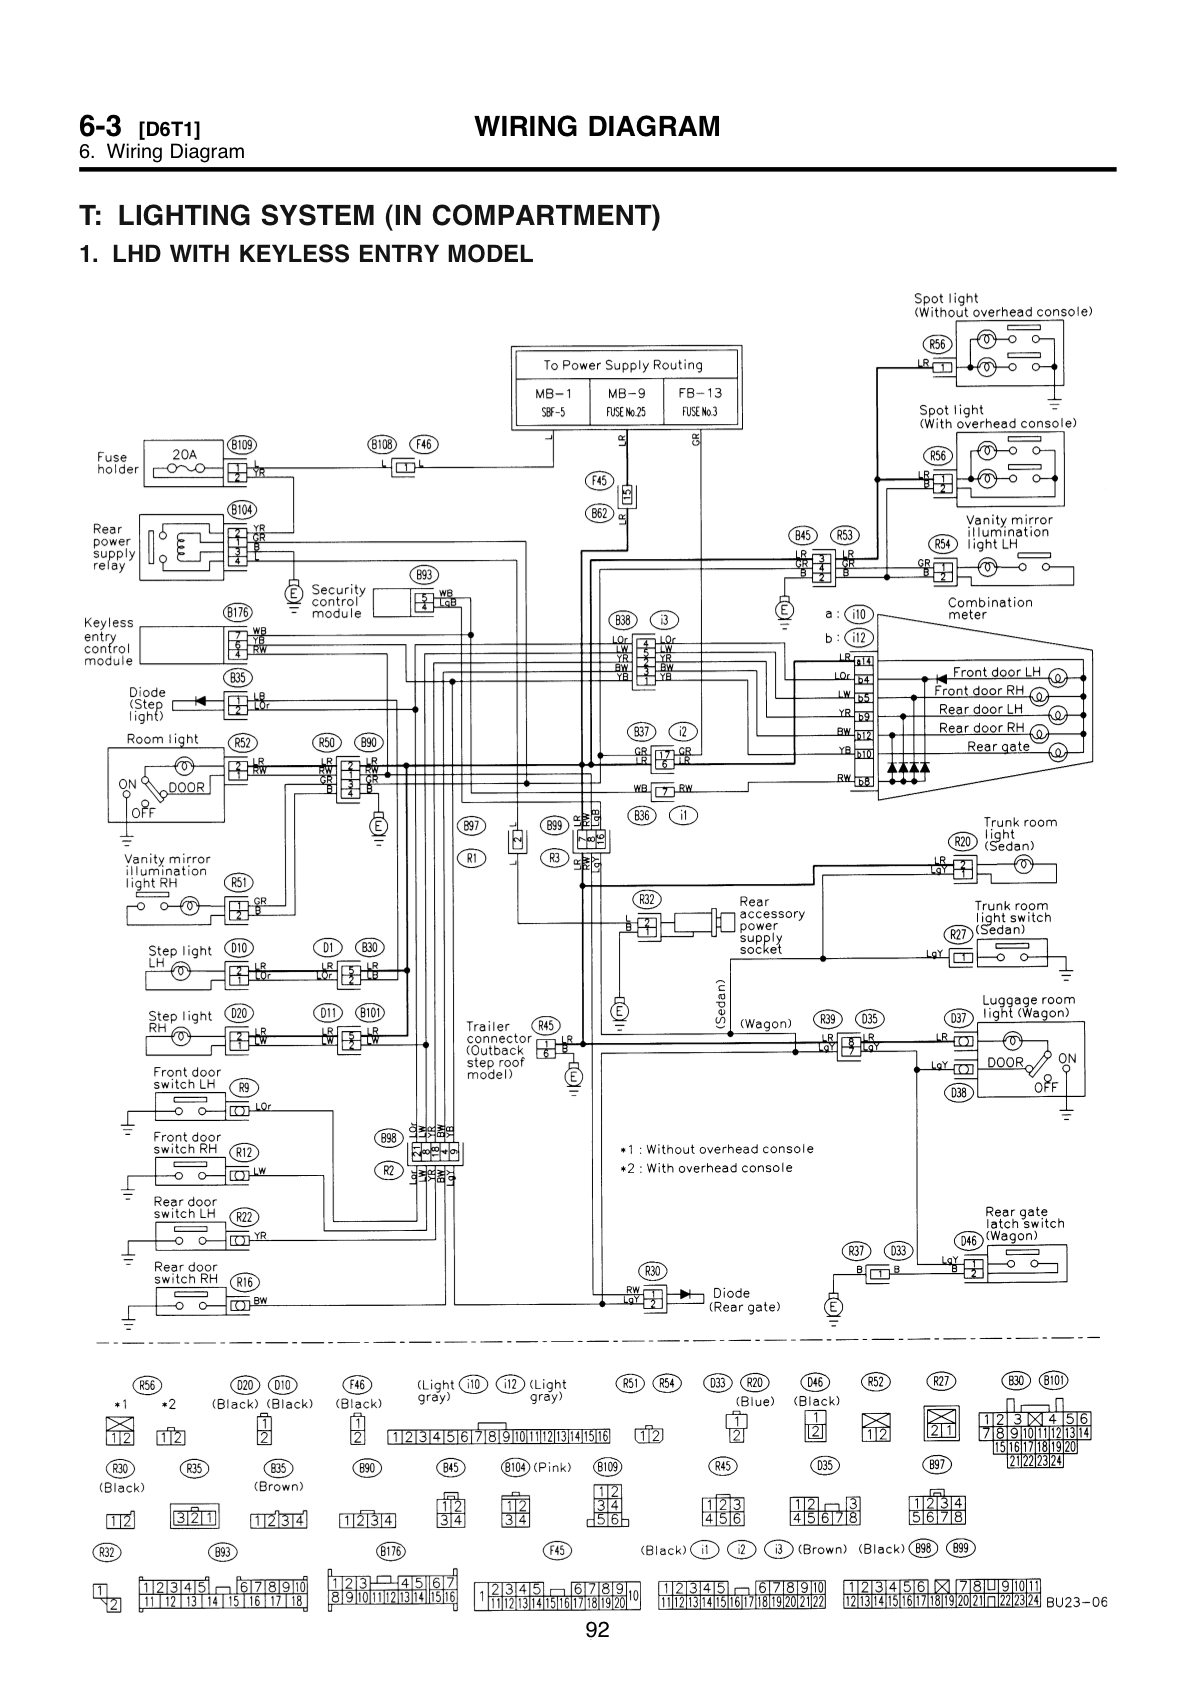 wiring_diagram1?resize\=840%2C1187 diagrams 554363 kramer single humbucker wiring diagram kramer kramer pacer wiring diagram at webbmarketing.co